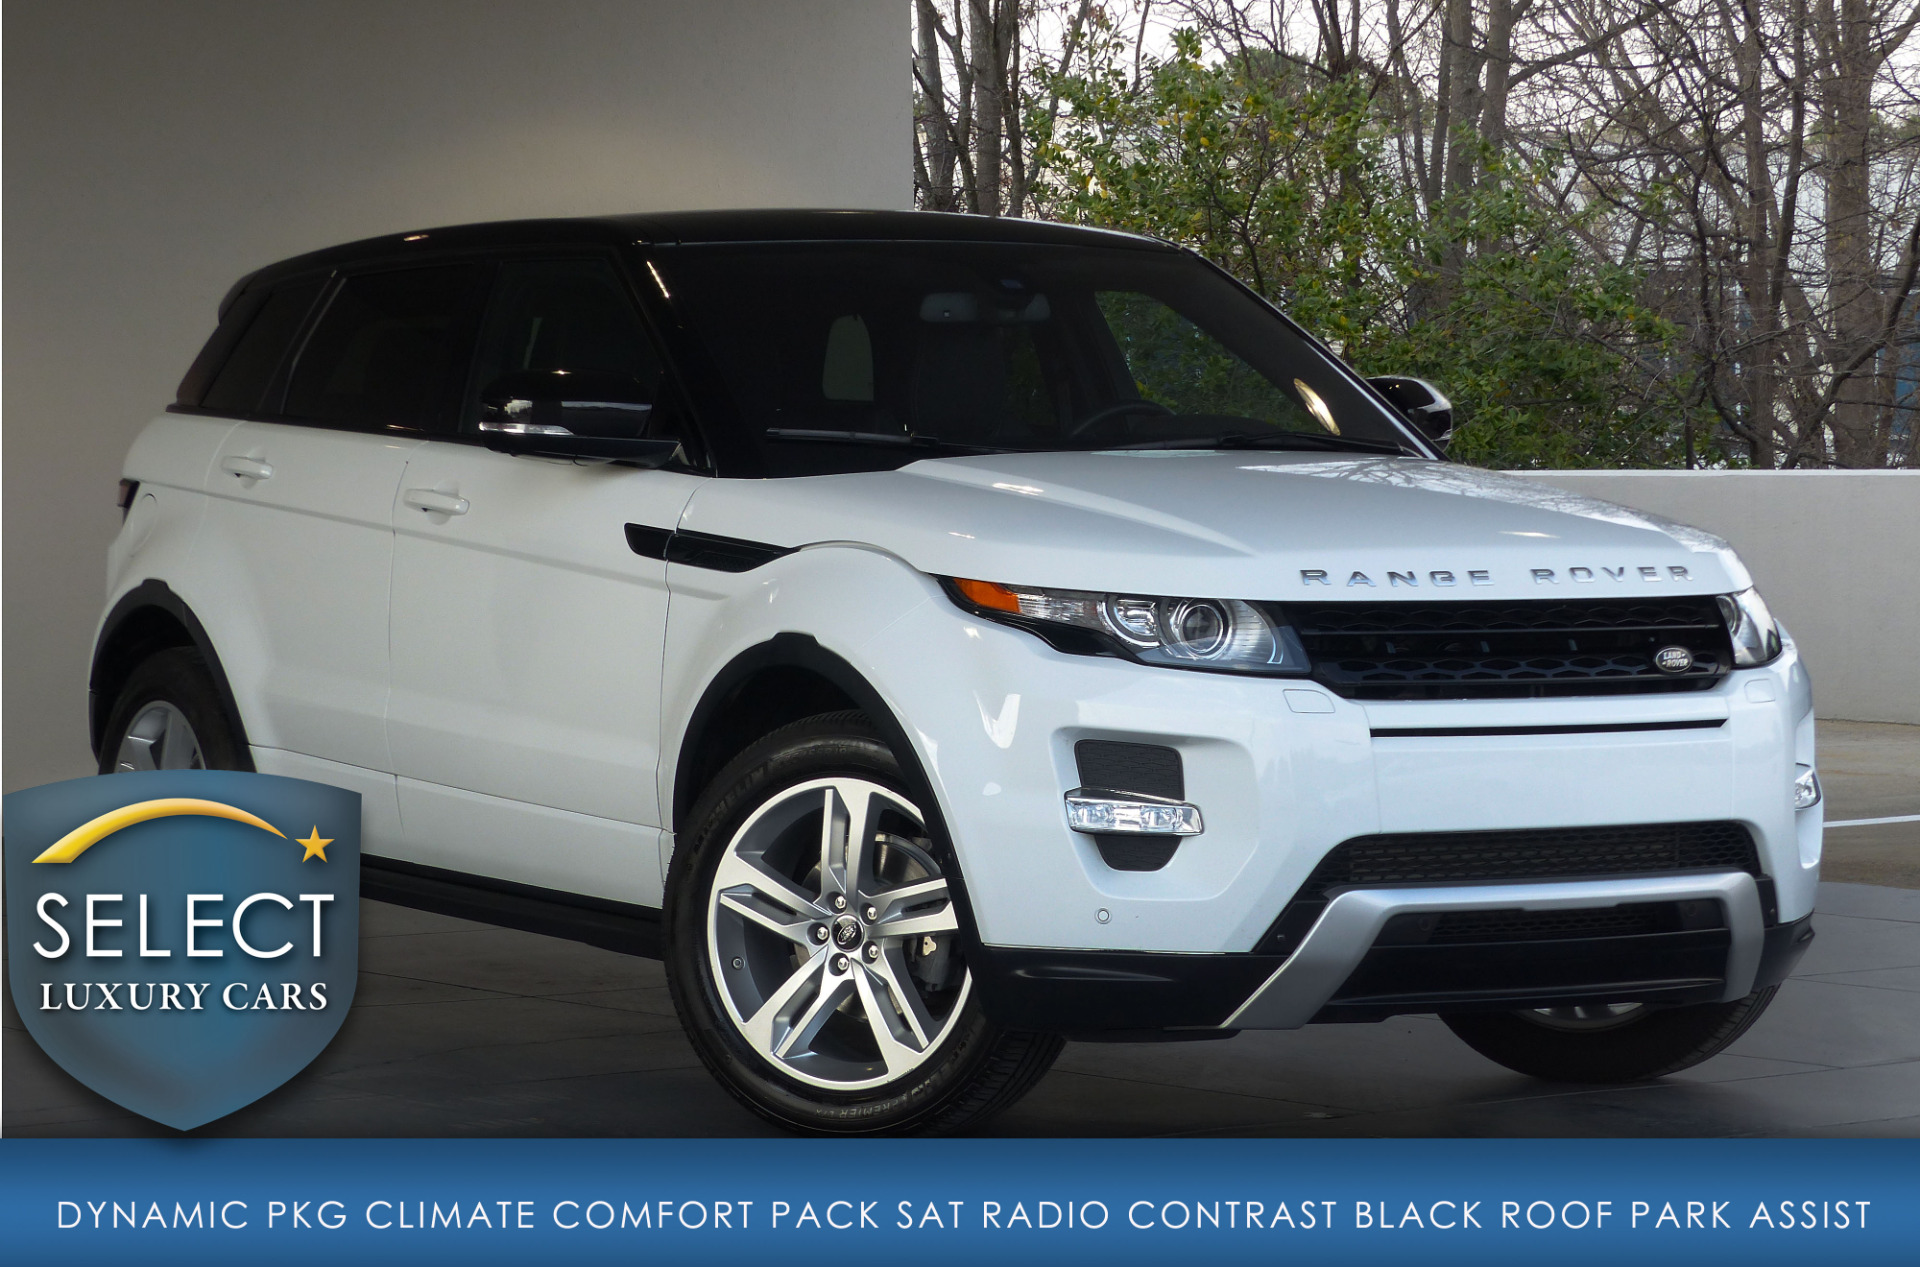 used 2013 land rover range rover evoque dynamic marietta ga. Black Bedroom Furniture Sets. Home Design Ideas